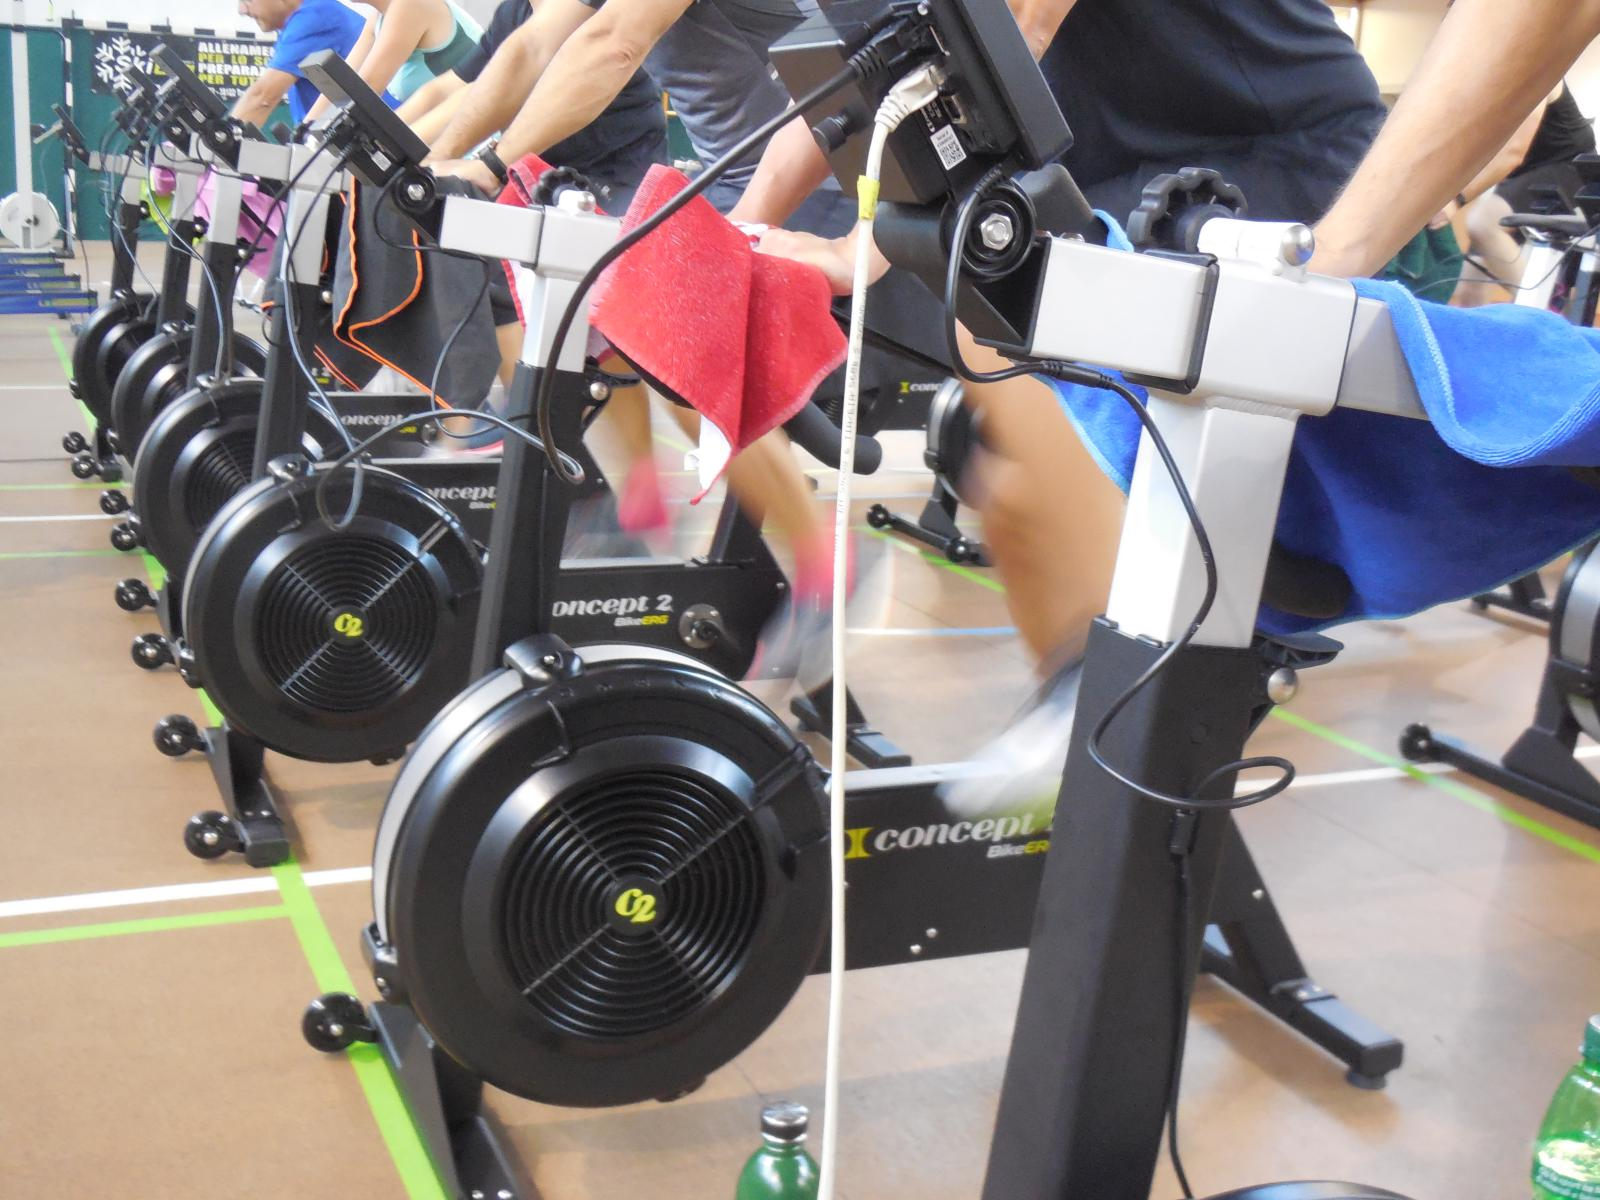 BikeErg in palestra a Trento | Prosport a.s.d. Trento